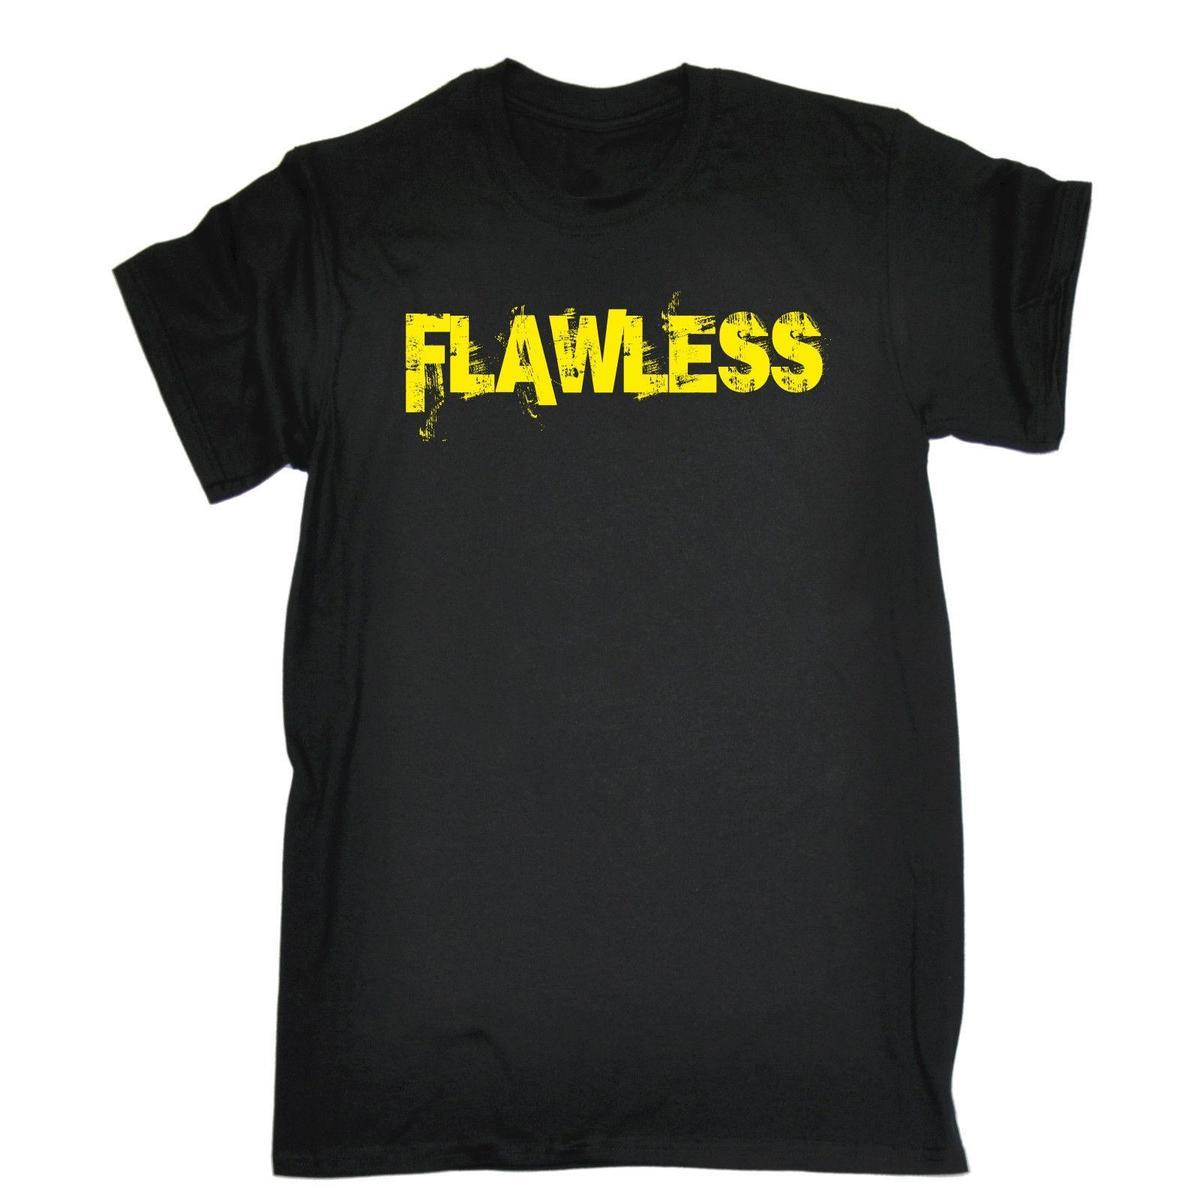 Flawless T SHIRT Perfection Slogan Hipster Urban Street Funny Gift Birthday Shirts And Buy Cool From Lefan03 1467